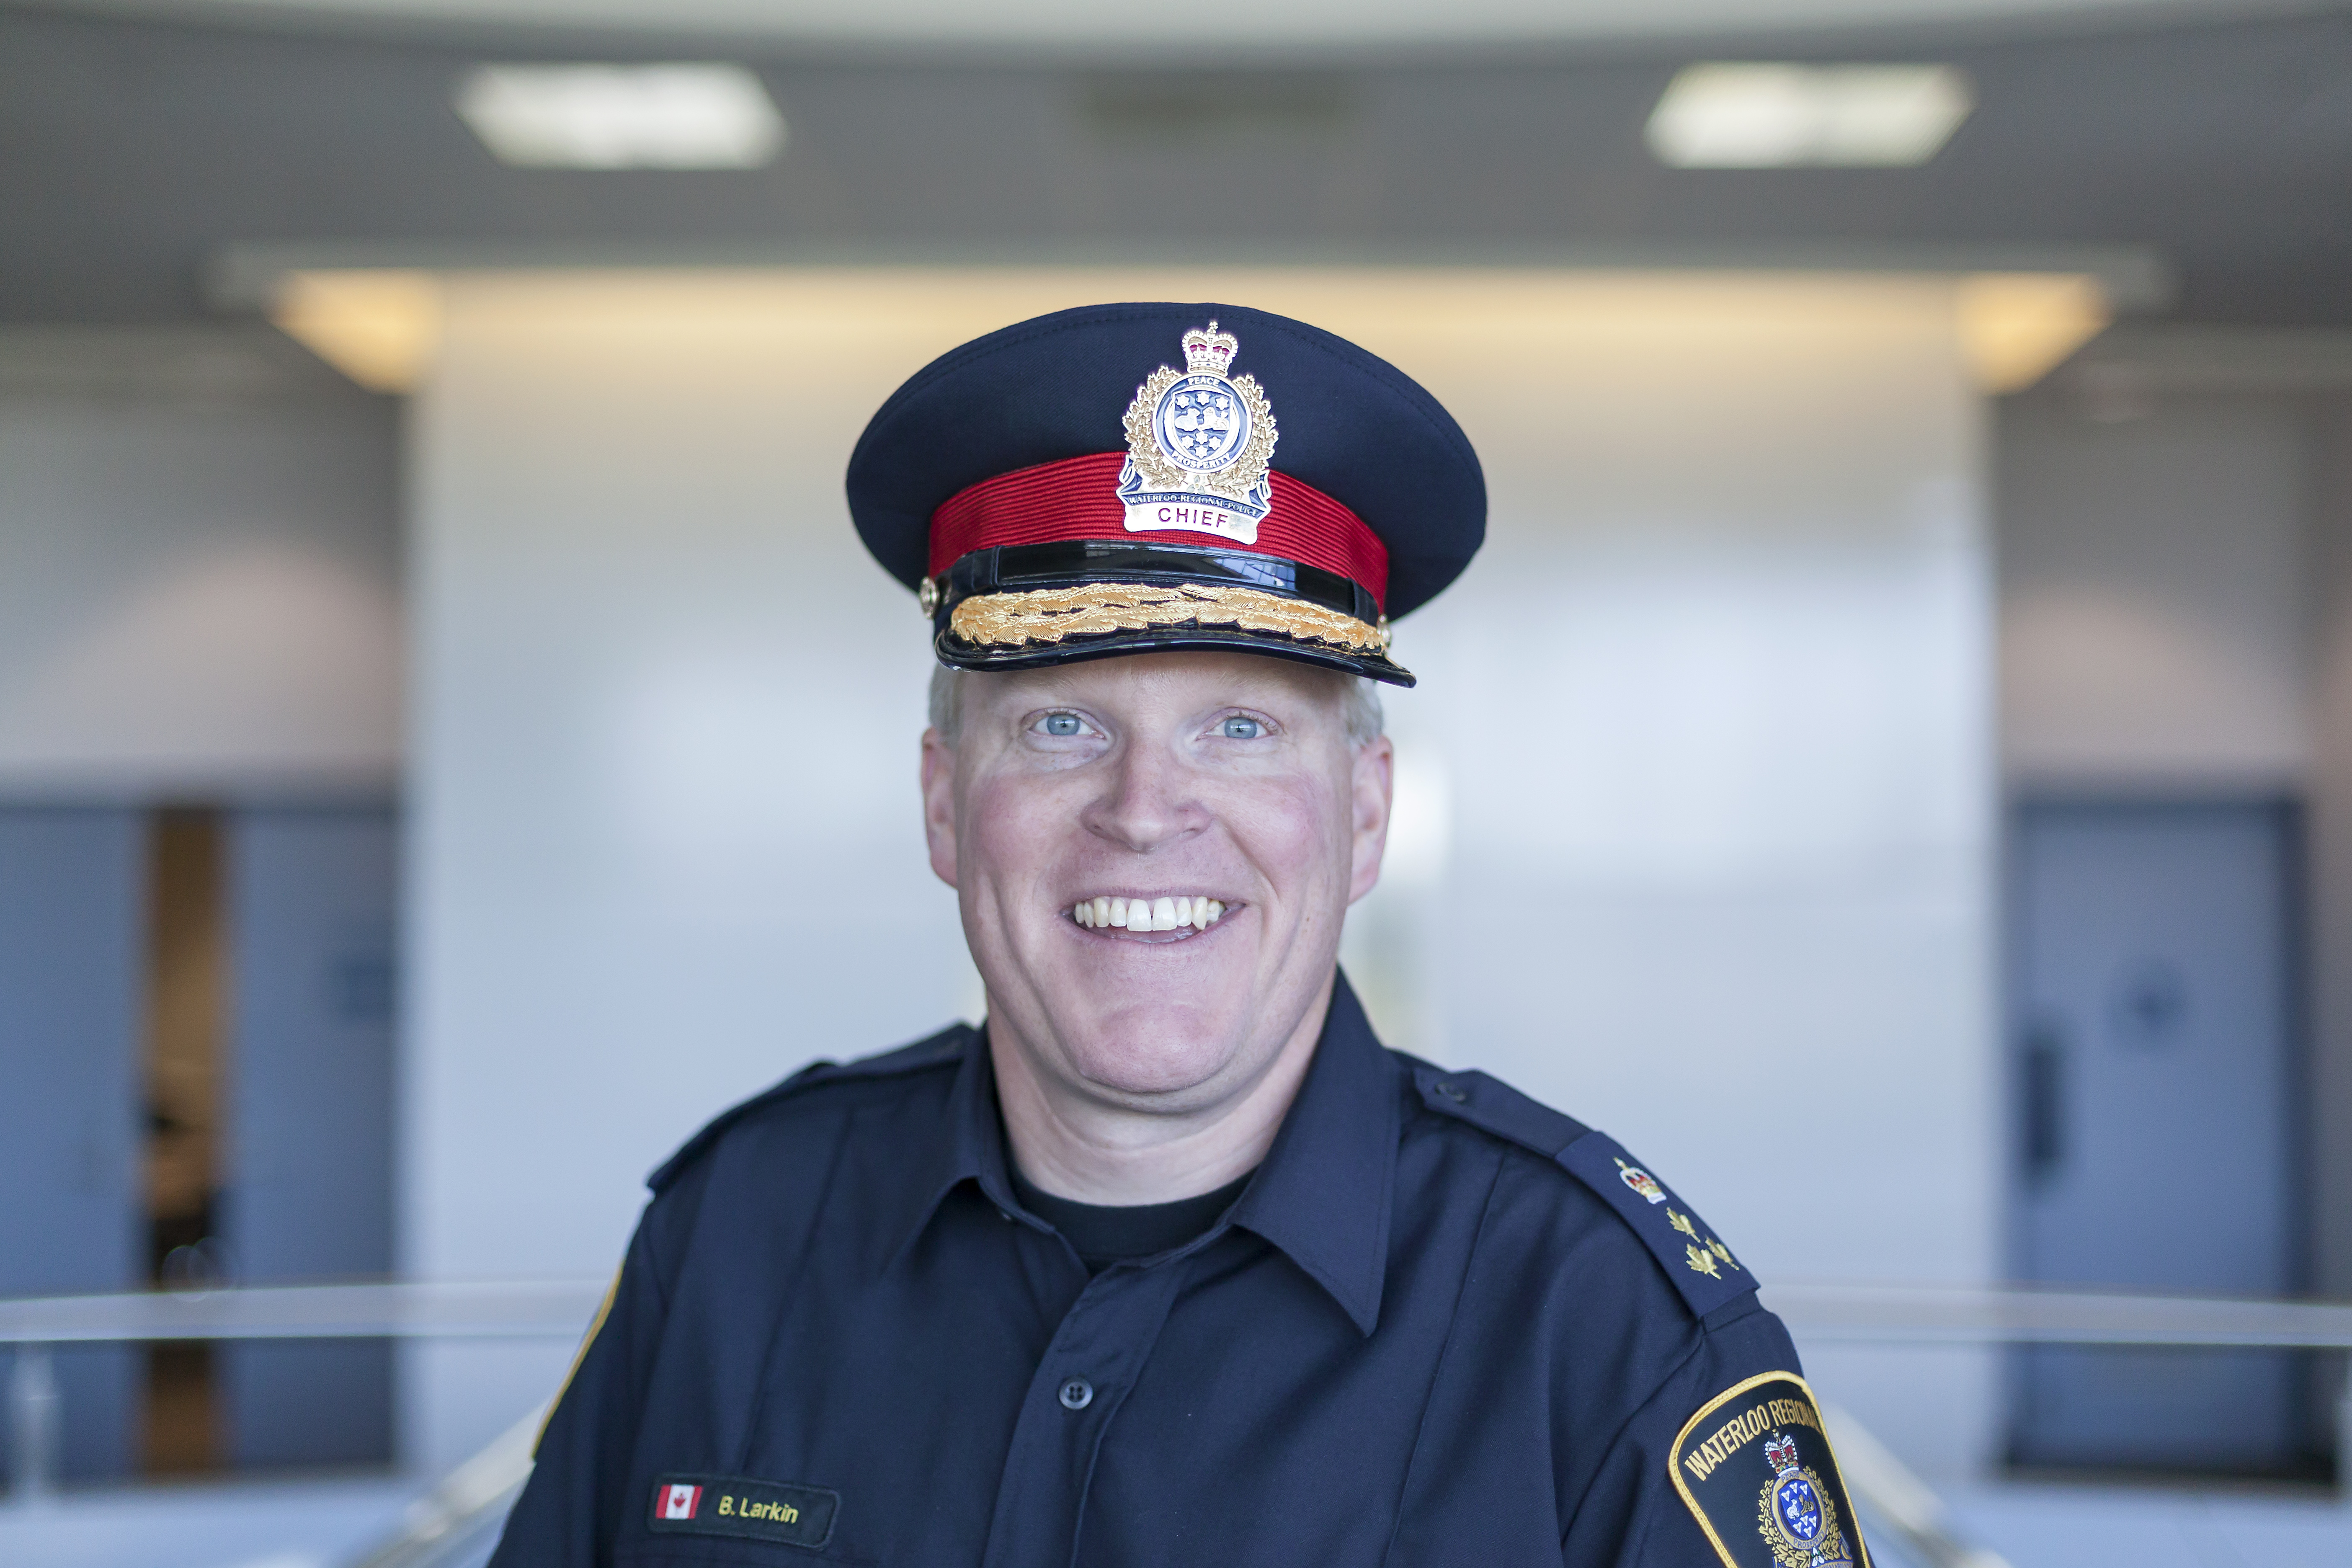 New chief for WRPS